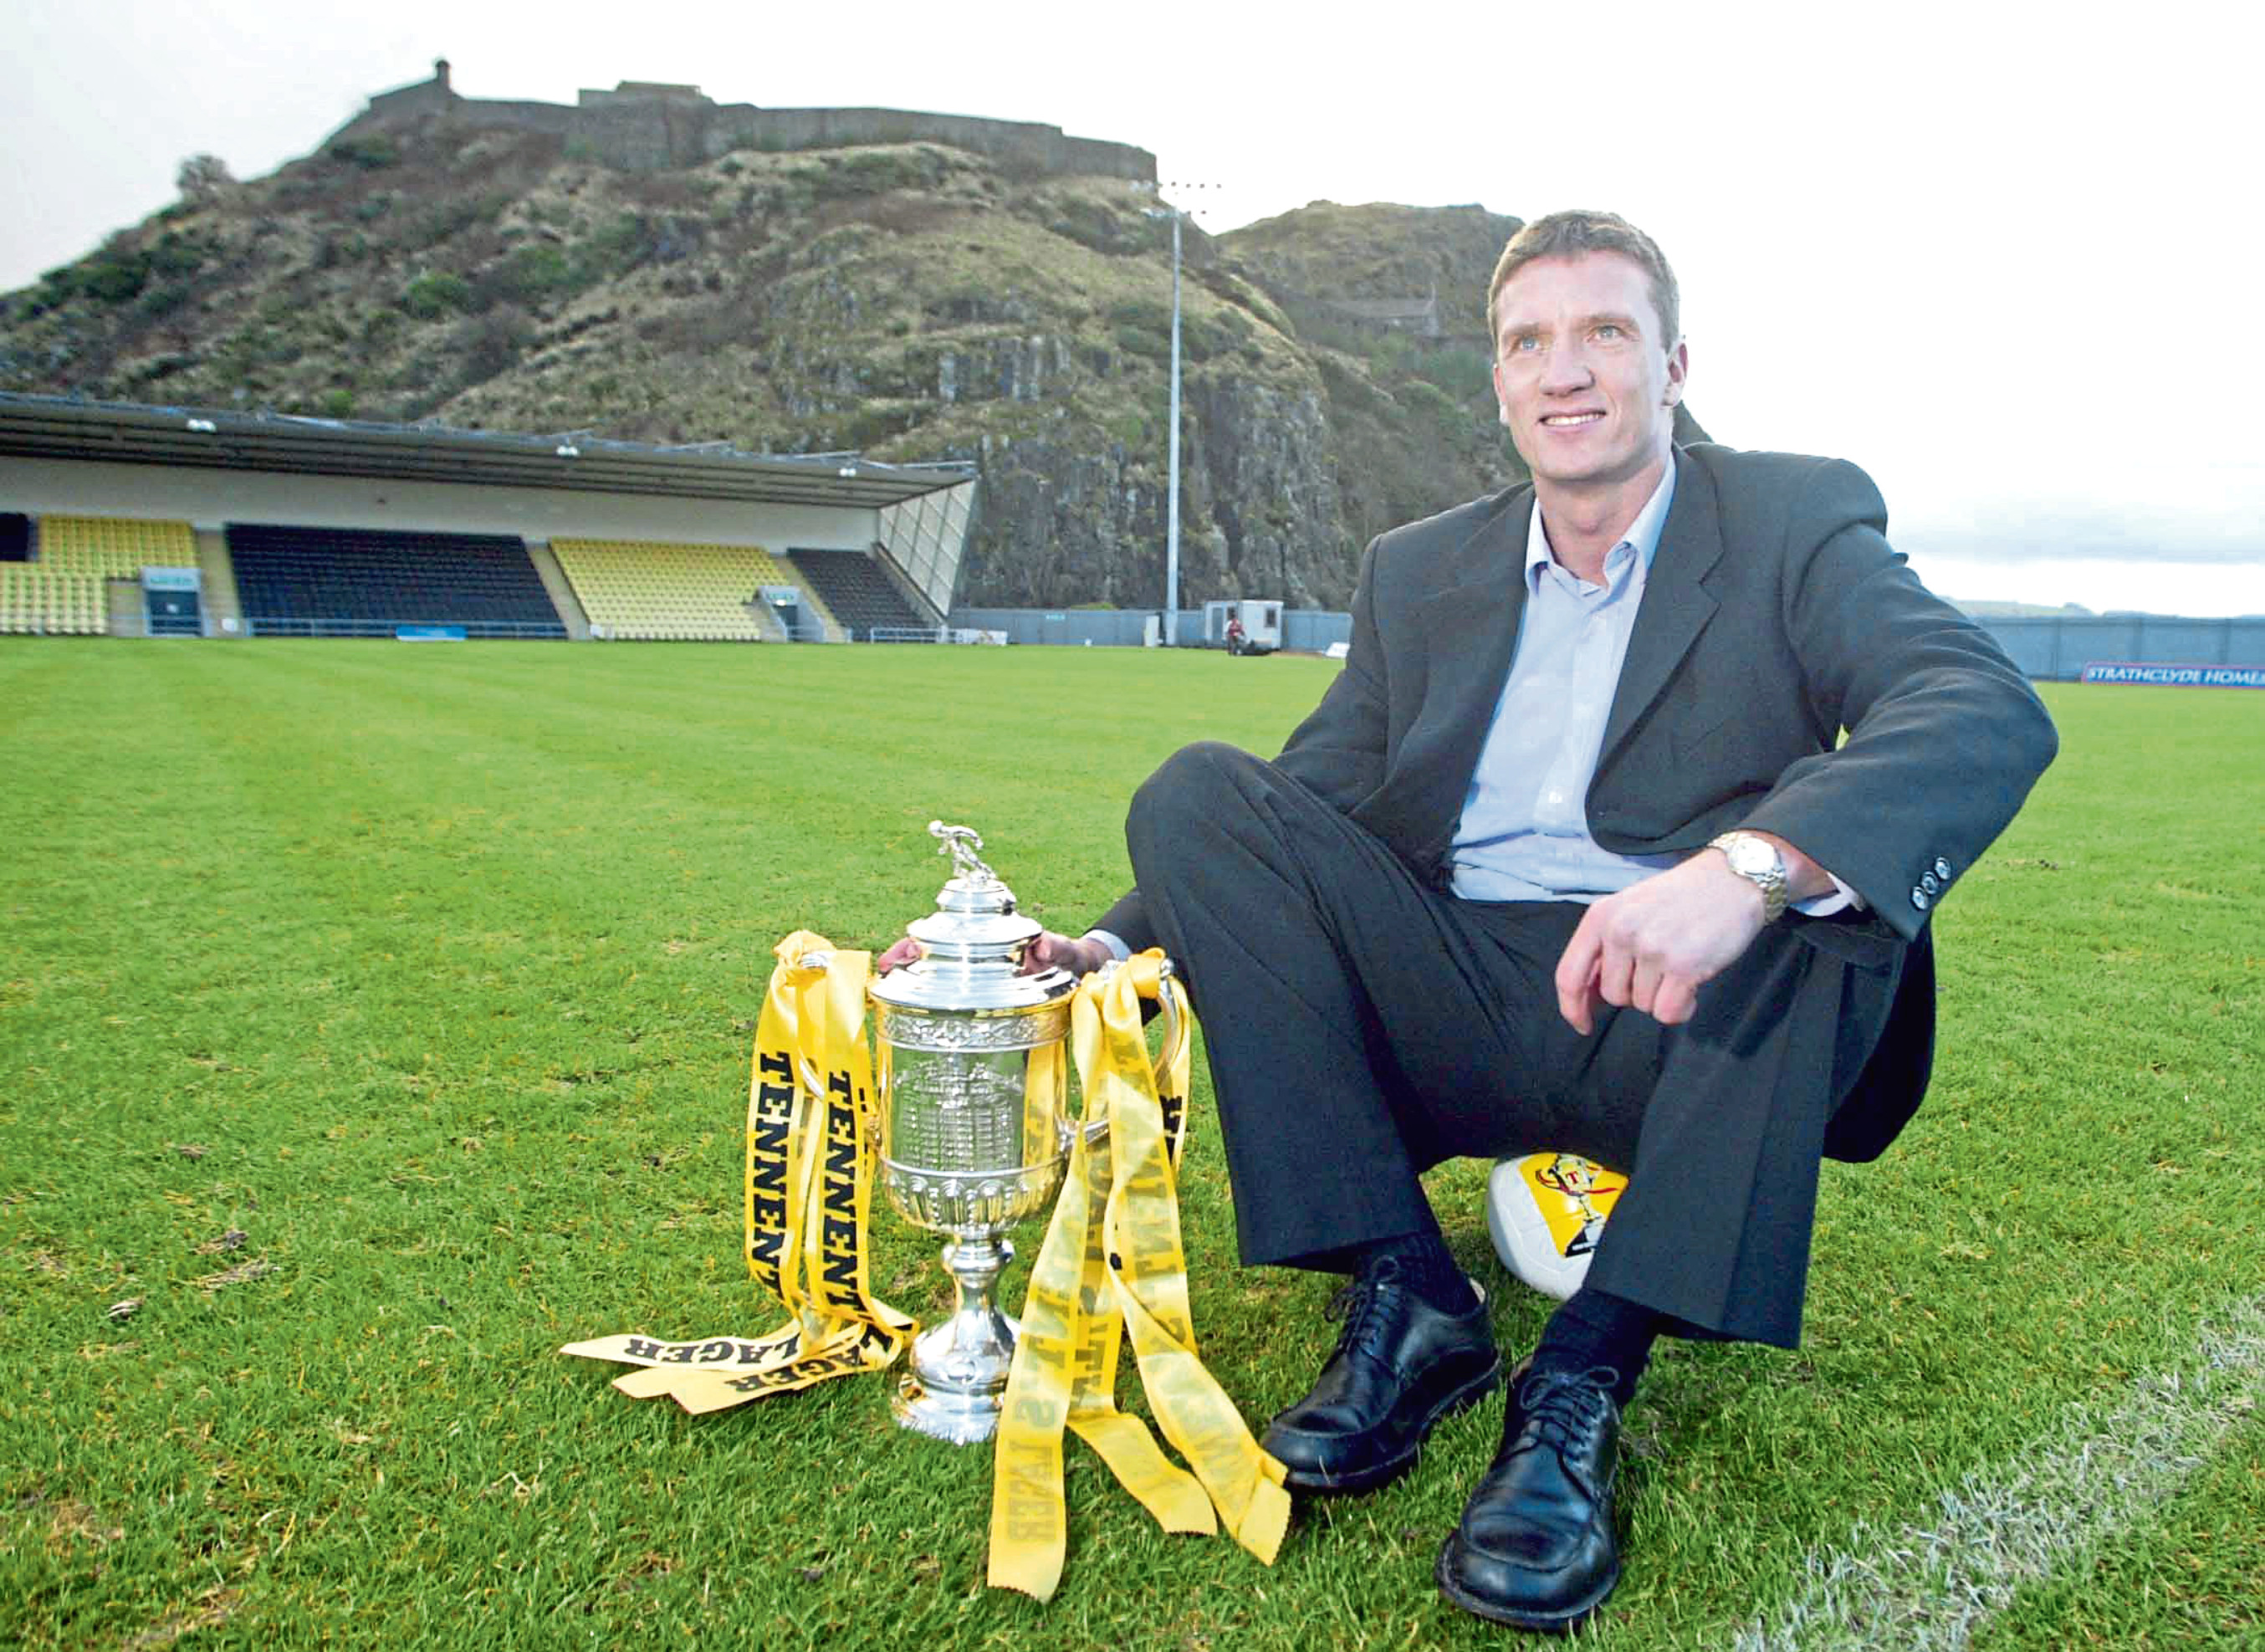 Former Dundee defender David Winnie has backed his old club to avoid relegation from the Premiership this season